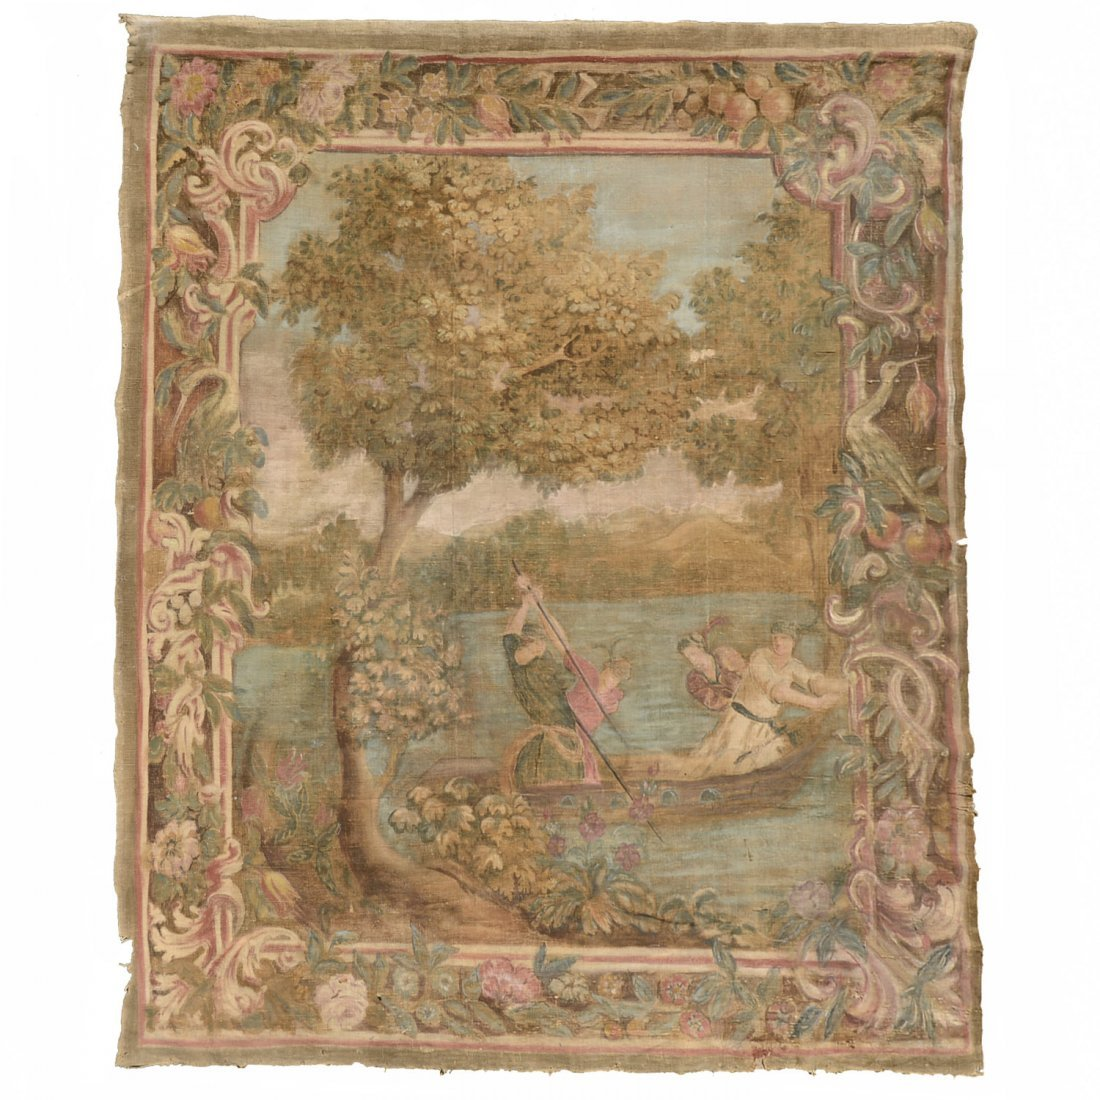 Antique Italian painted tapestry